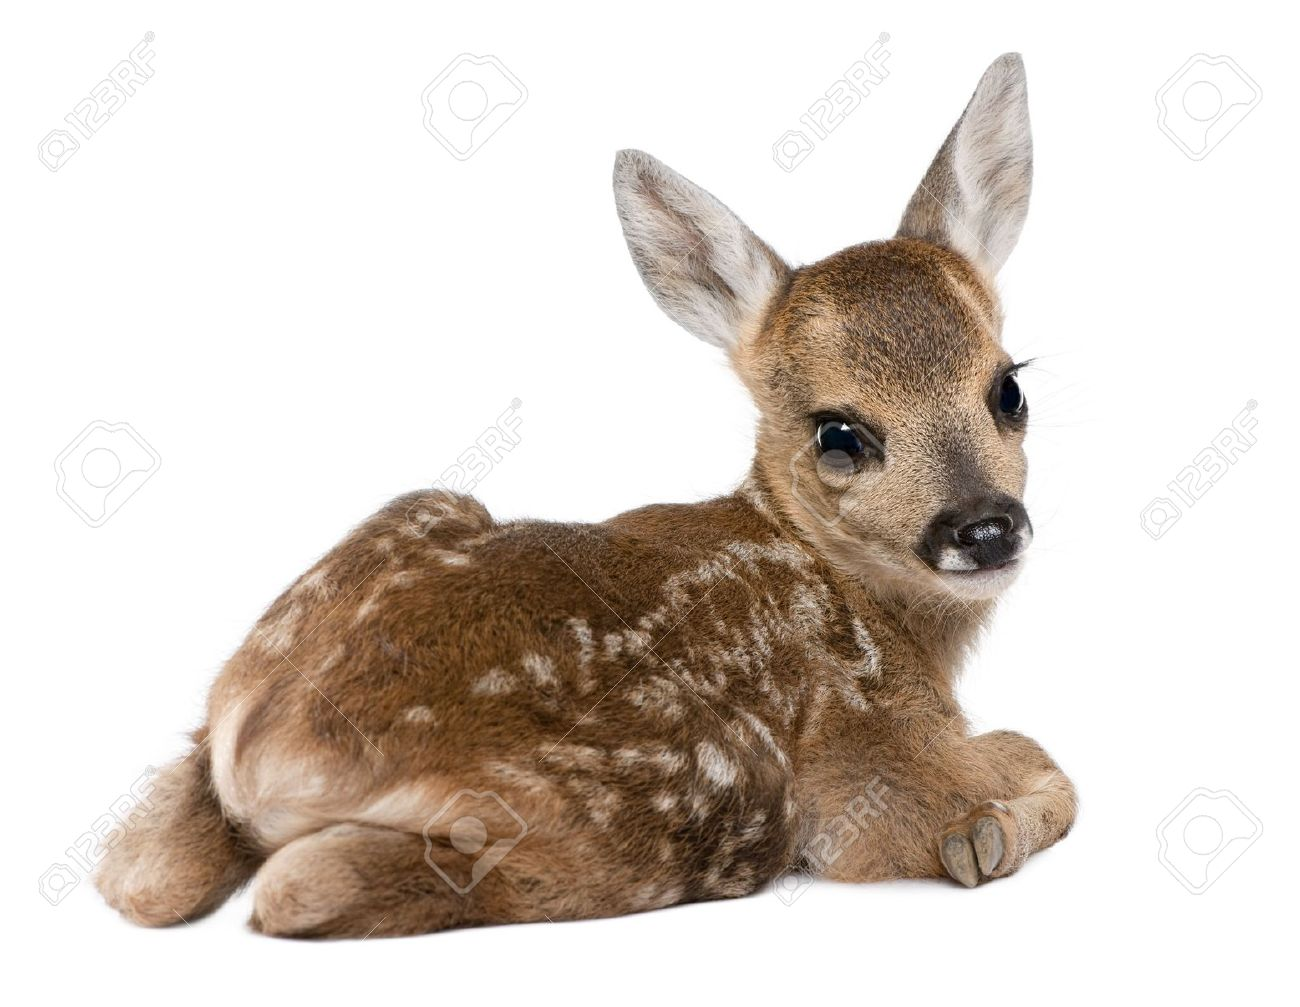 Roe Deer Fawn   Capreolus Capreolus 15 Days Old In Front Of 1300x1007